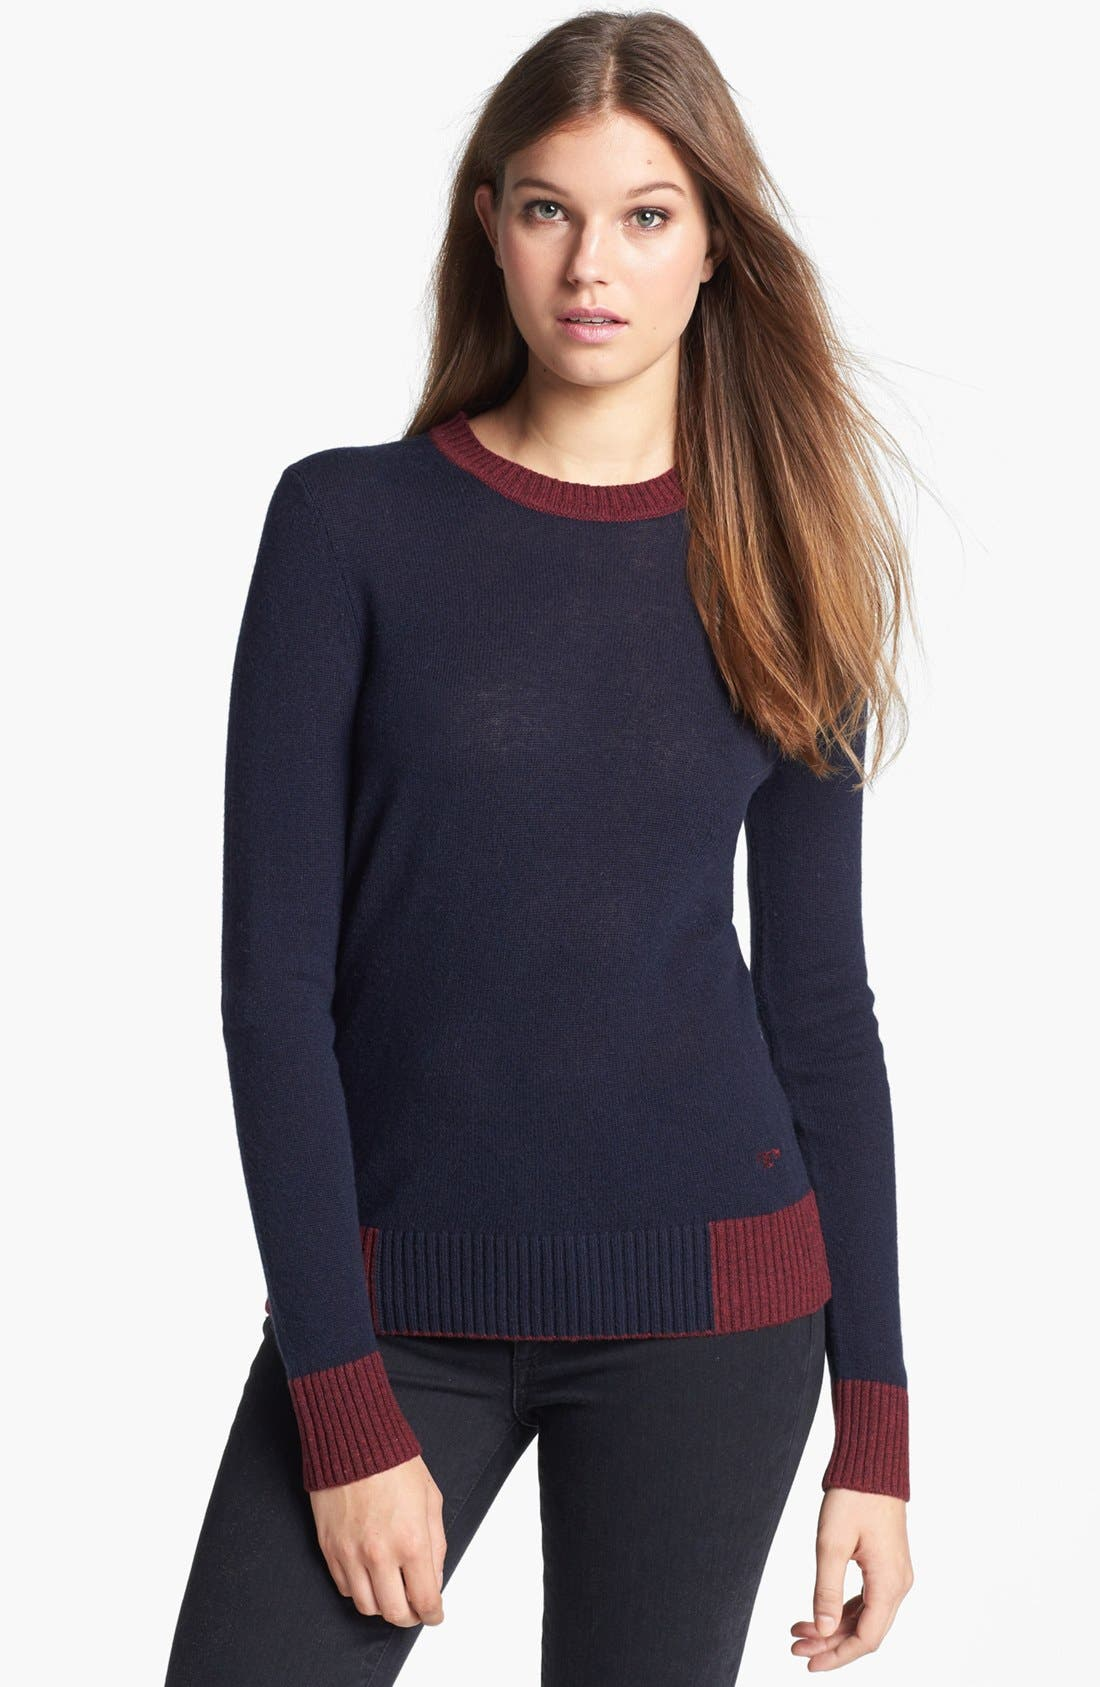 Alternate Image 1 Selected - Tory Burch 'Mandy' Wool & Cashmere Sweater